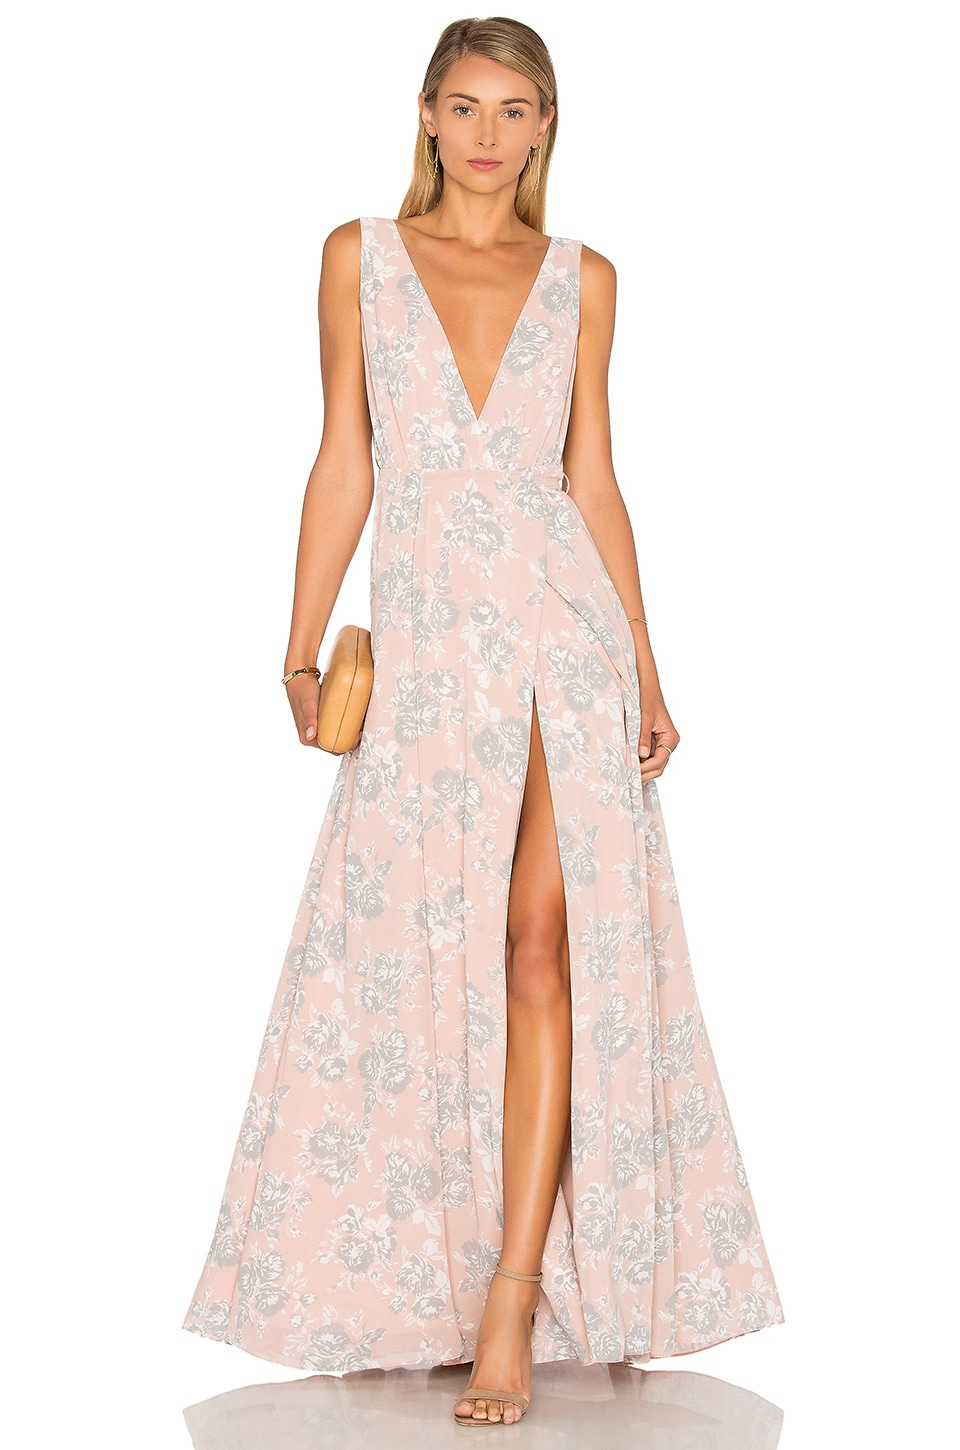 Lovers + Friends x REVOLVE Leah Gown in Floral